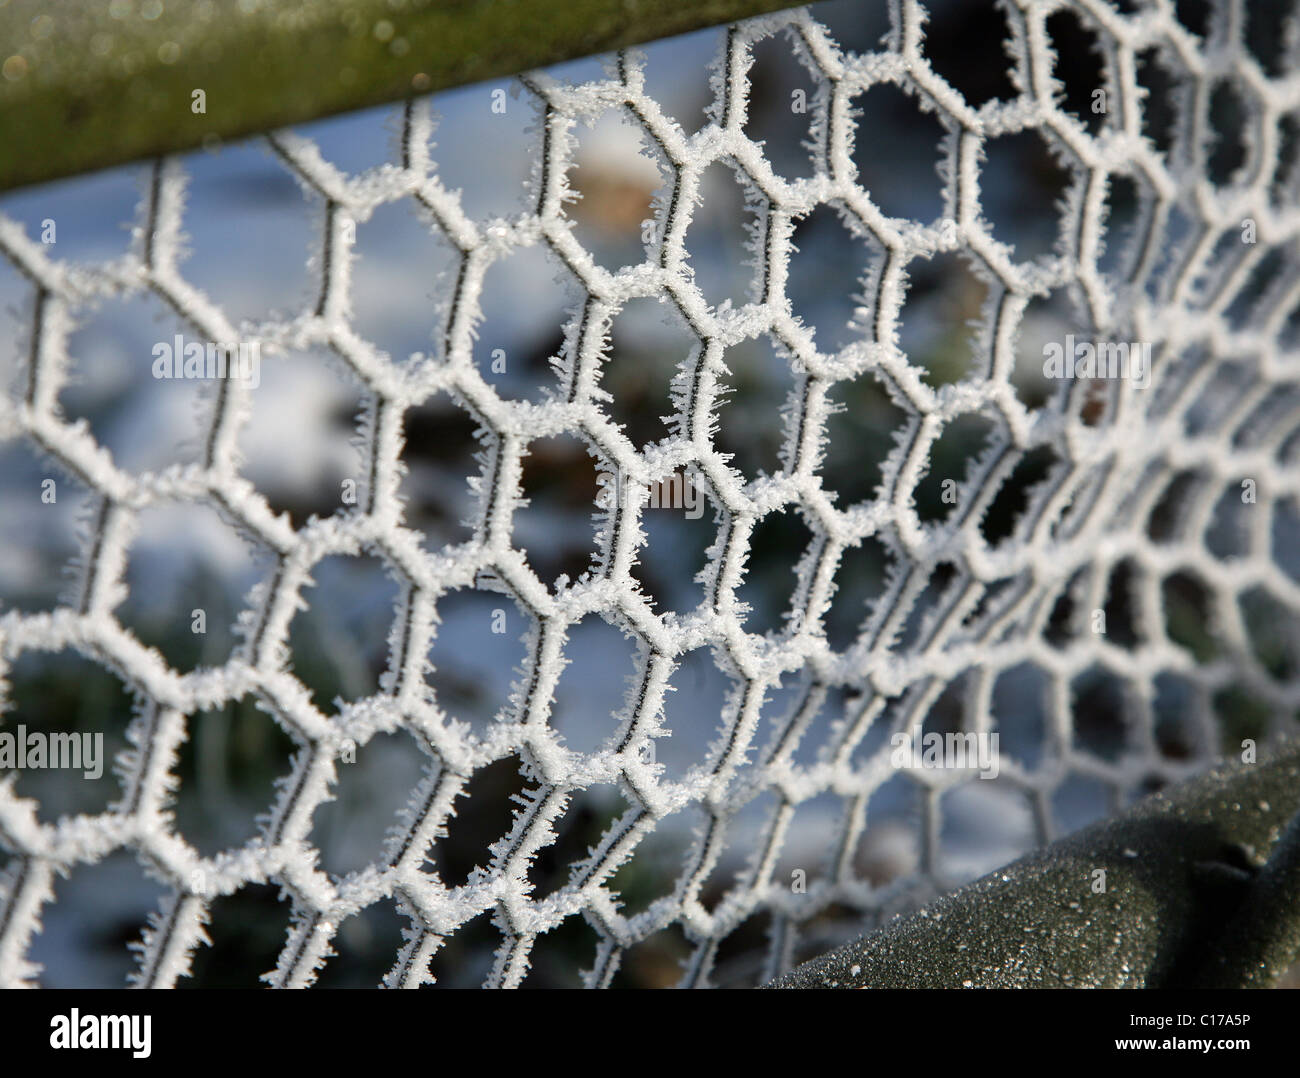 hexagonal fencing covered in hoar frost England, Winter 2010 - Stock Image